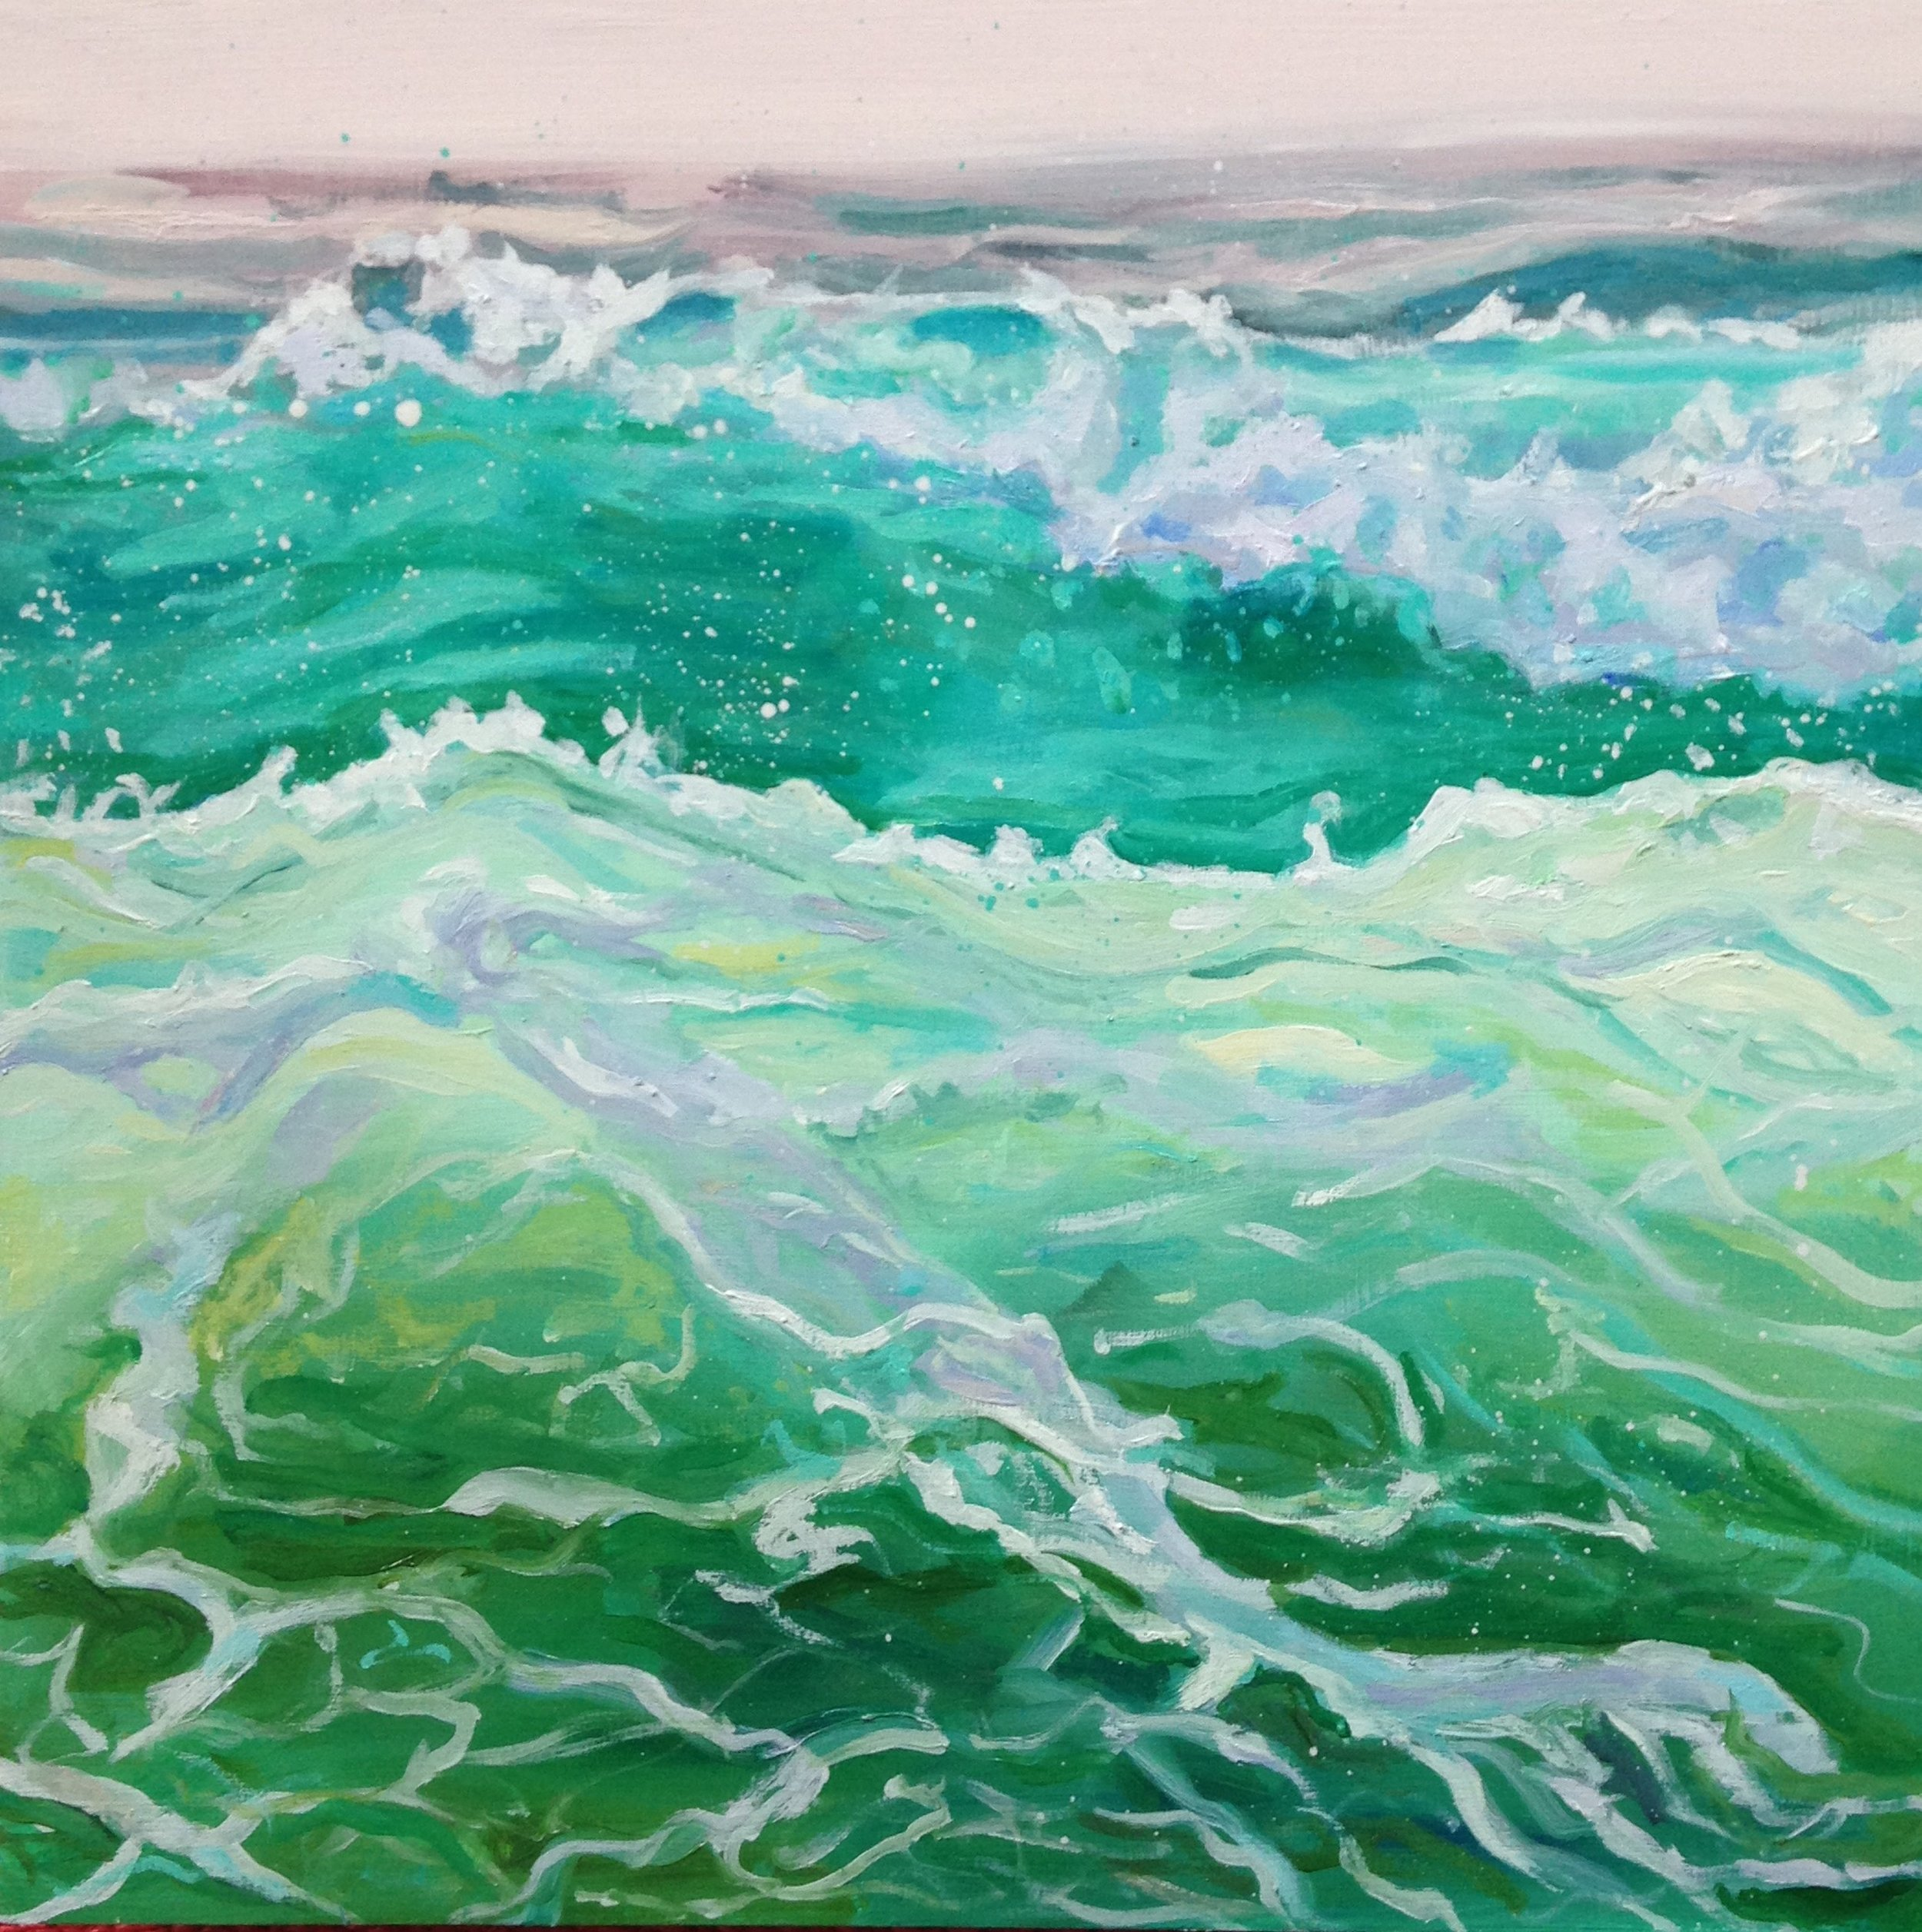 E.Whiteman-Making Waves #12018-oil on ply-300x300mm.jpg